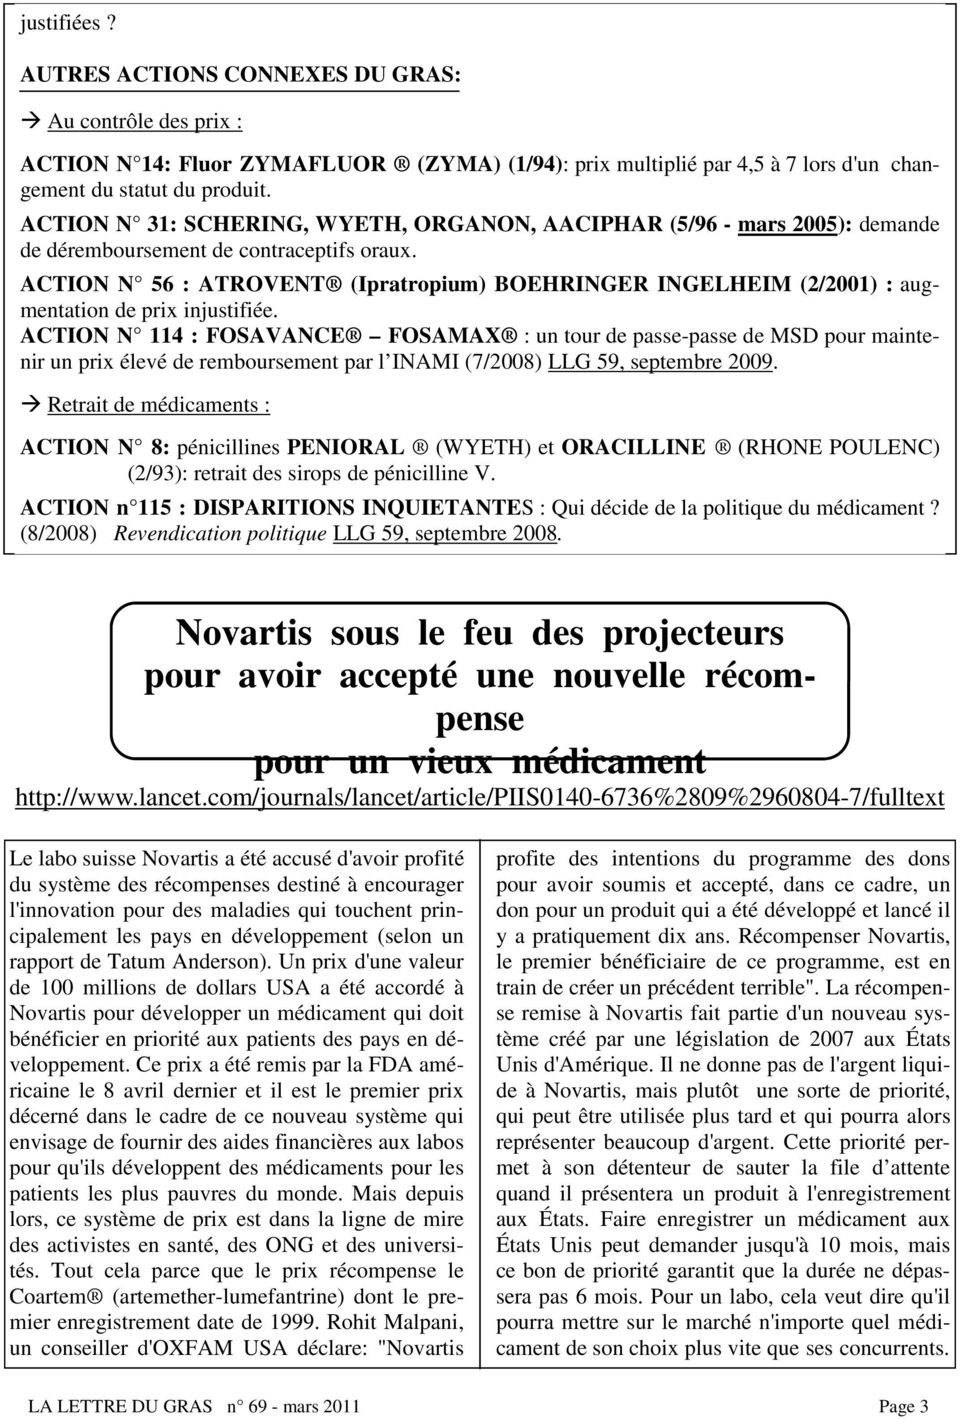 ACTION N 56 : ATROVENT (Ipratropium) BOEHRINGER INGELHEIM (2/2001) : augmentation de prix injustifiée.